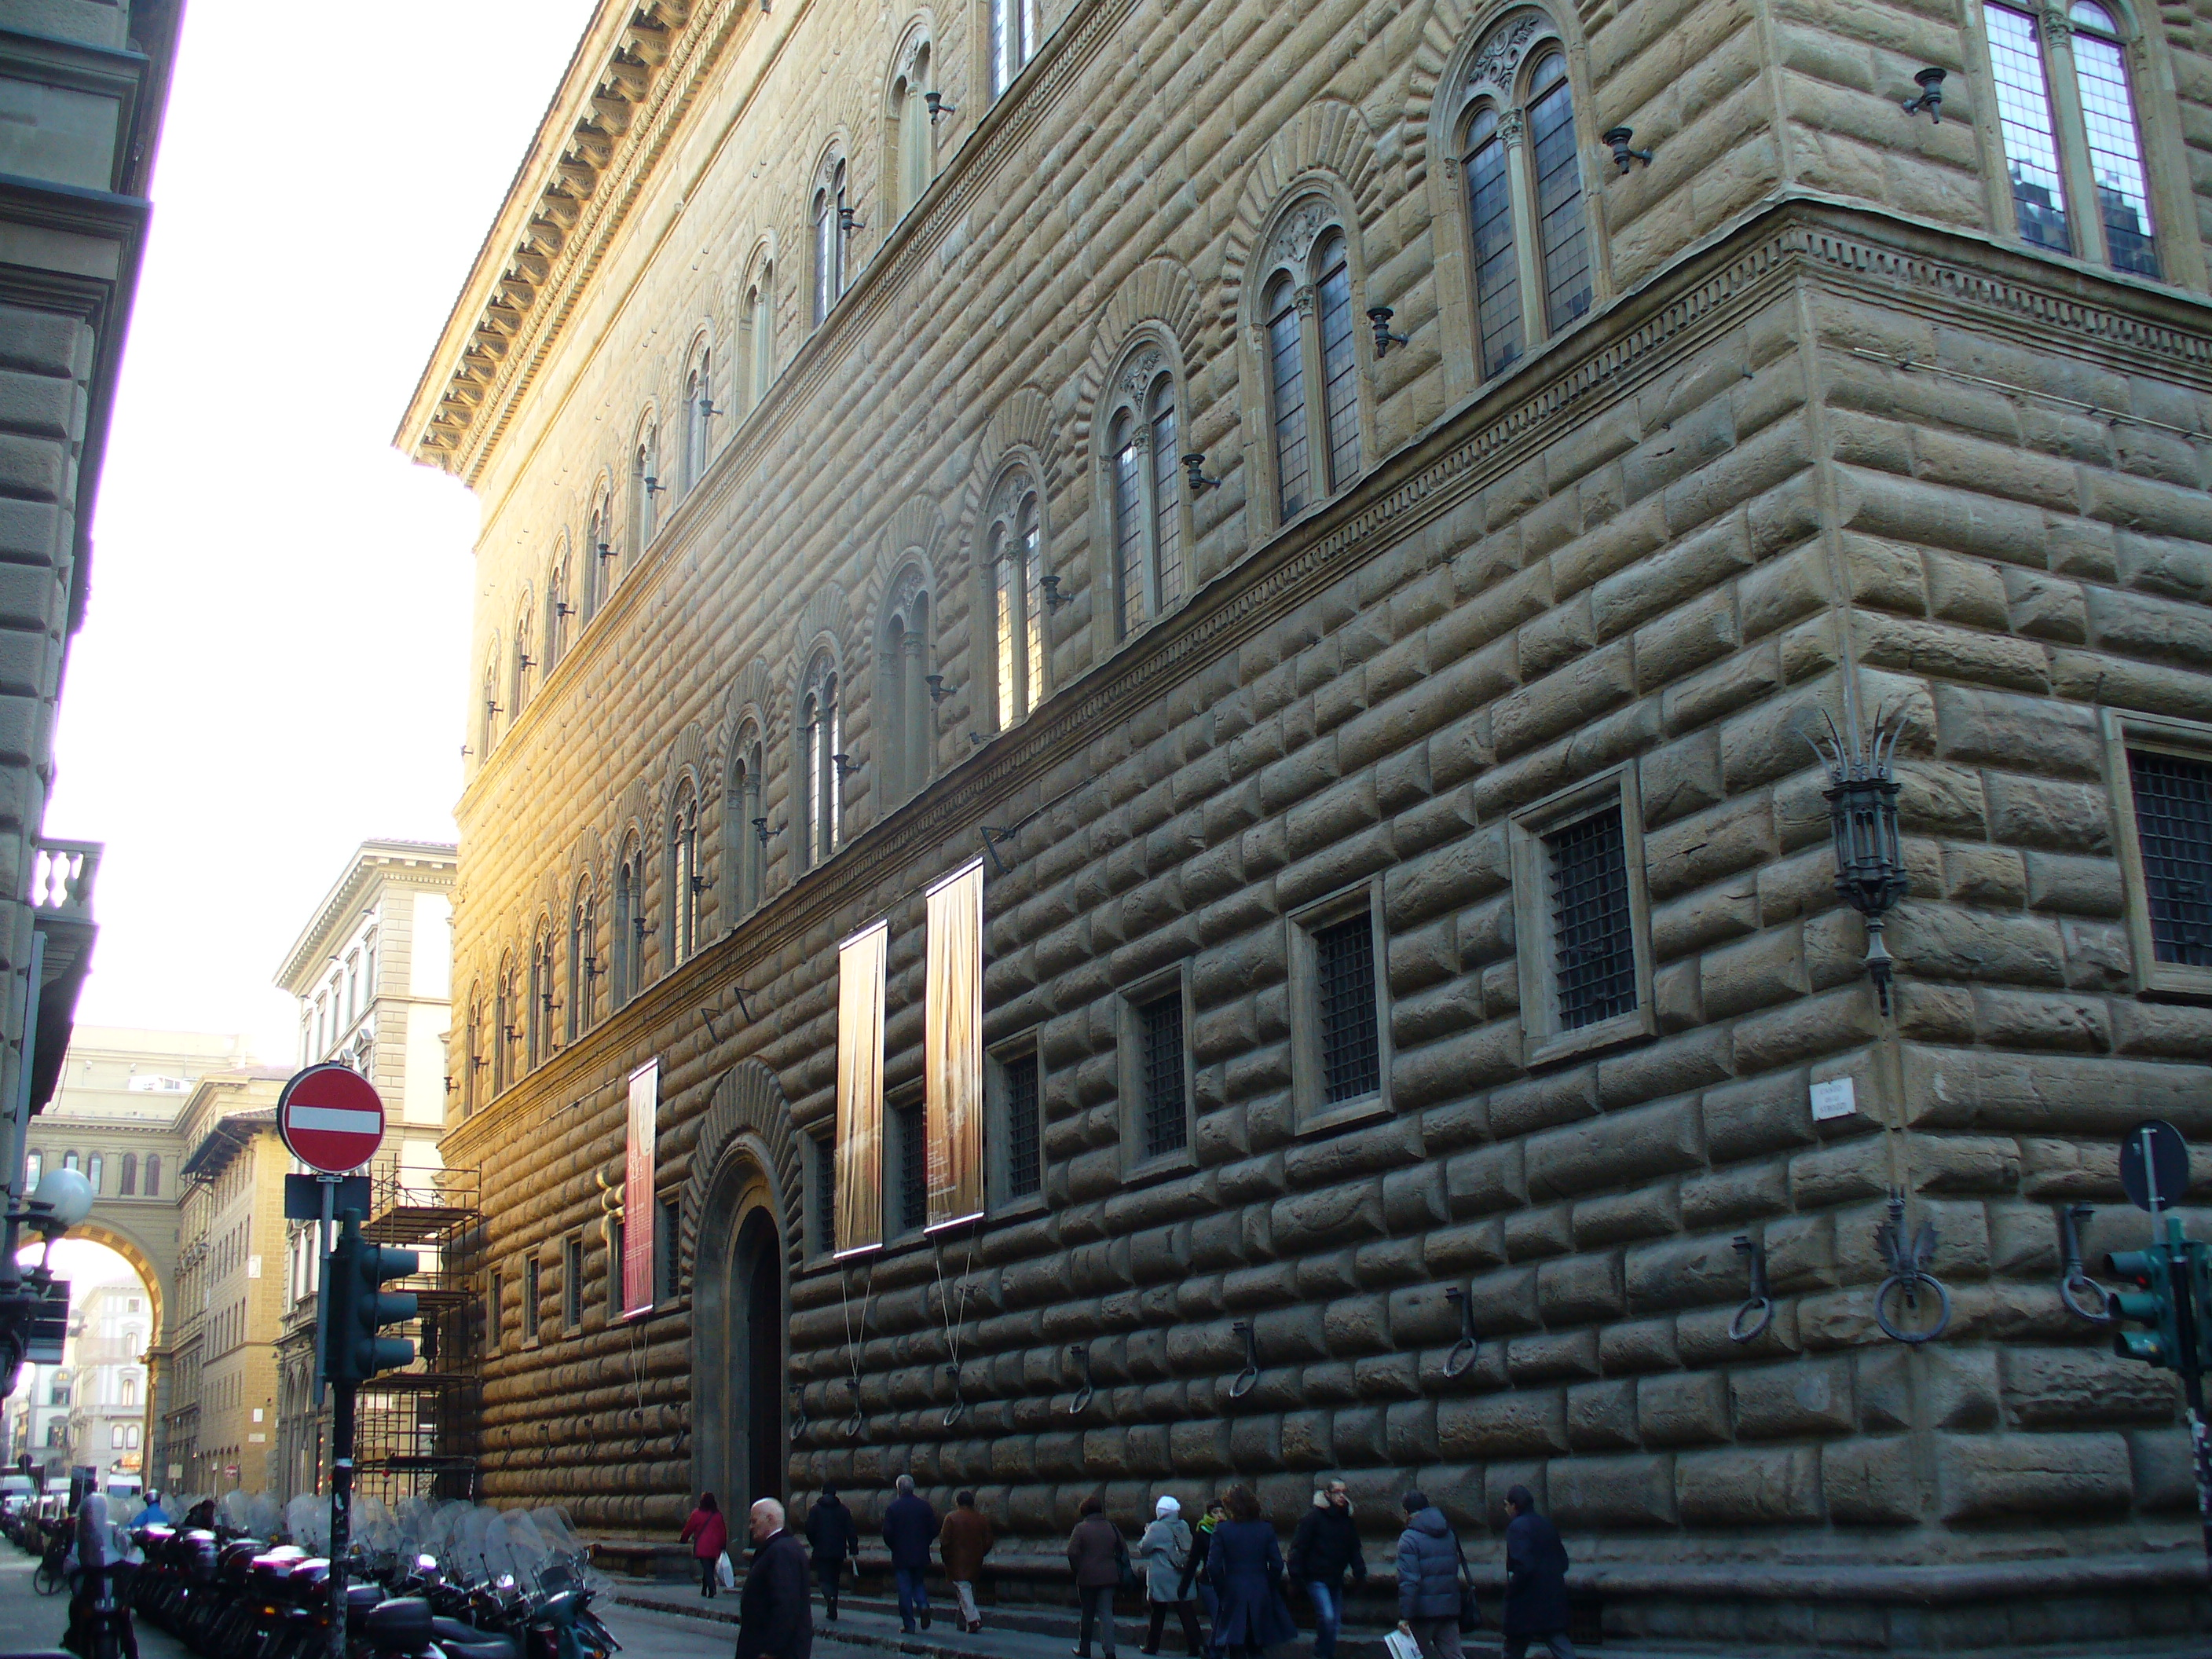 how tall is palazzo strozzi